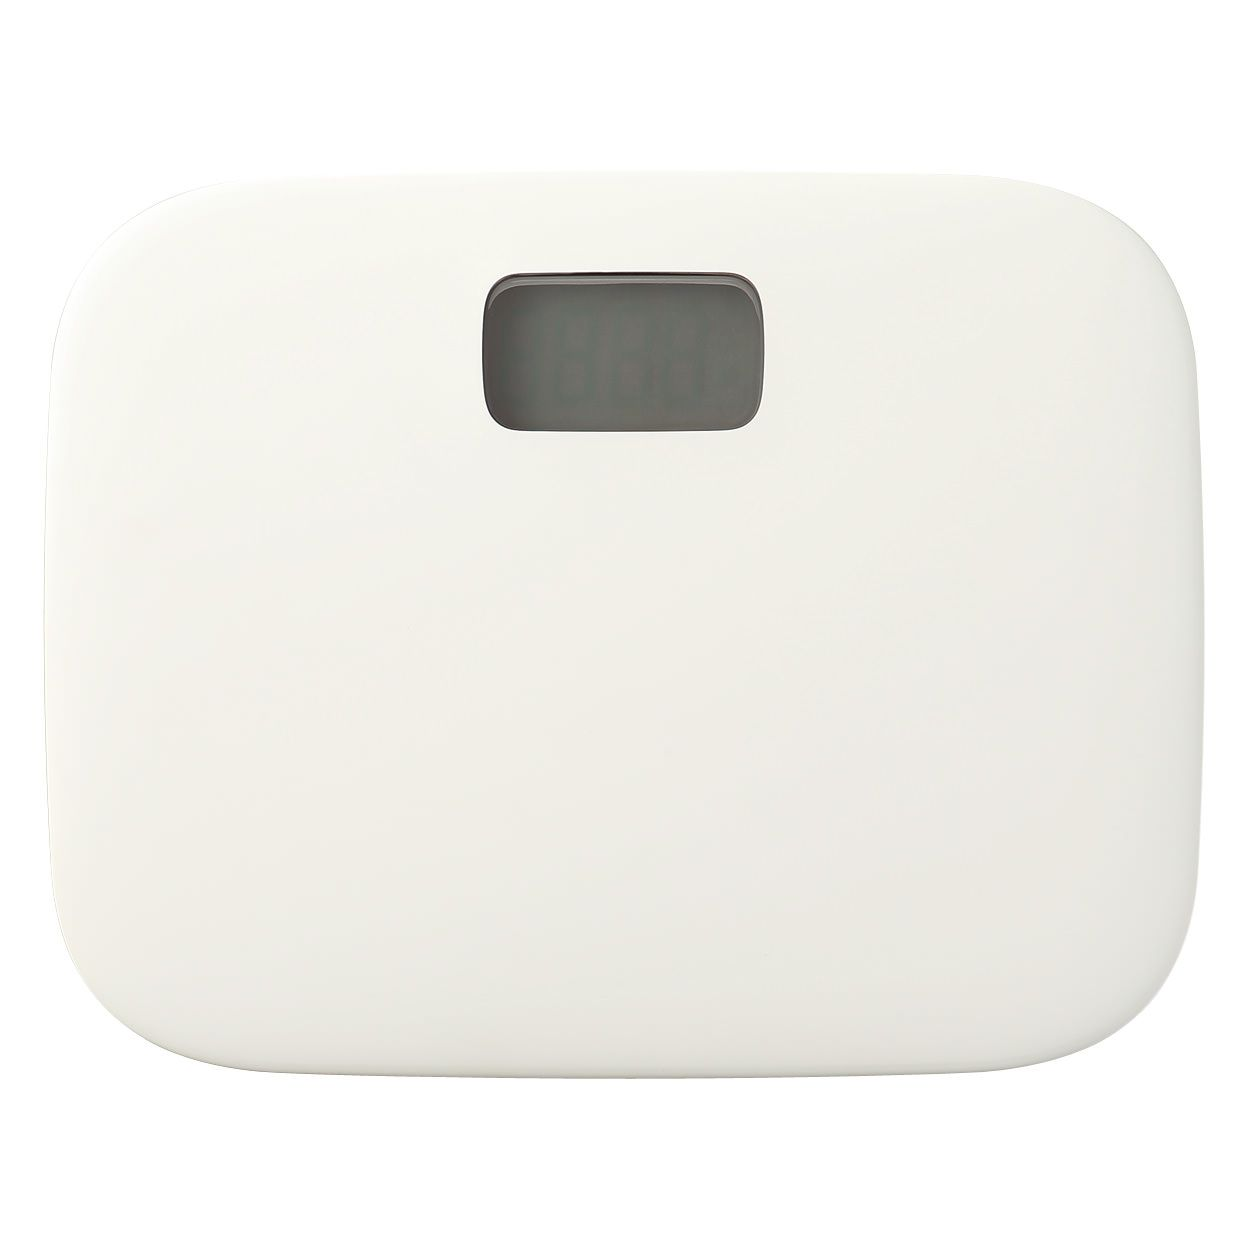 Muji Online Welcome To The Muji Online Store Pese Personne Objet